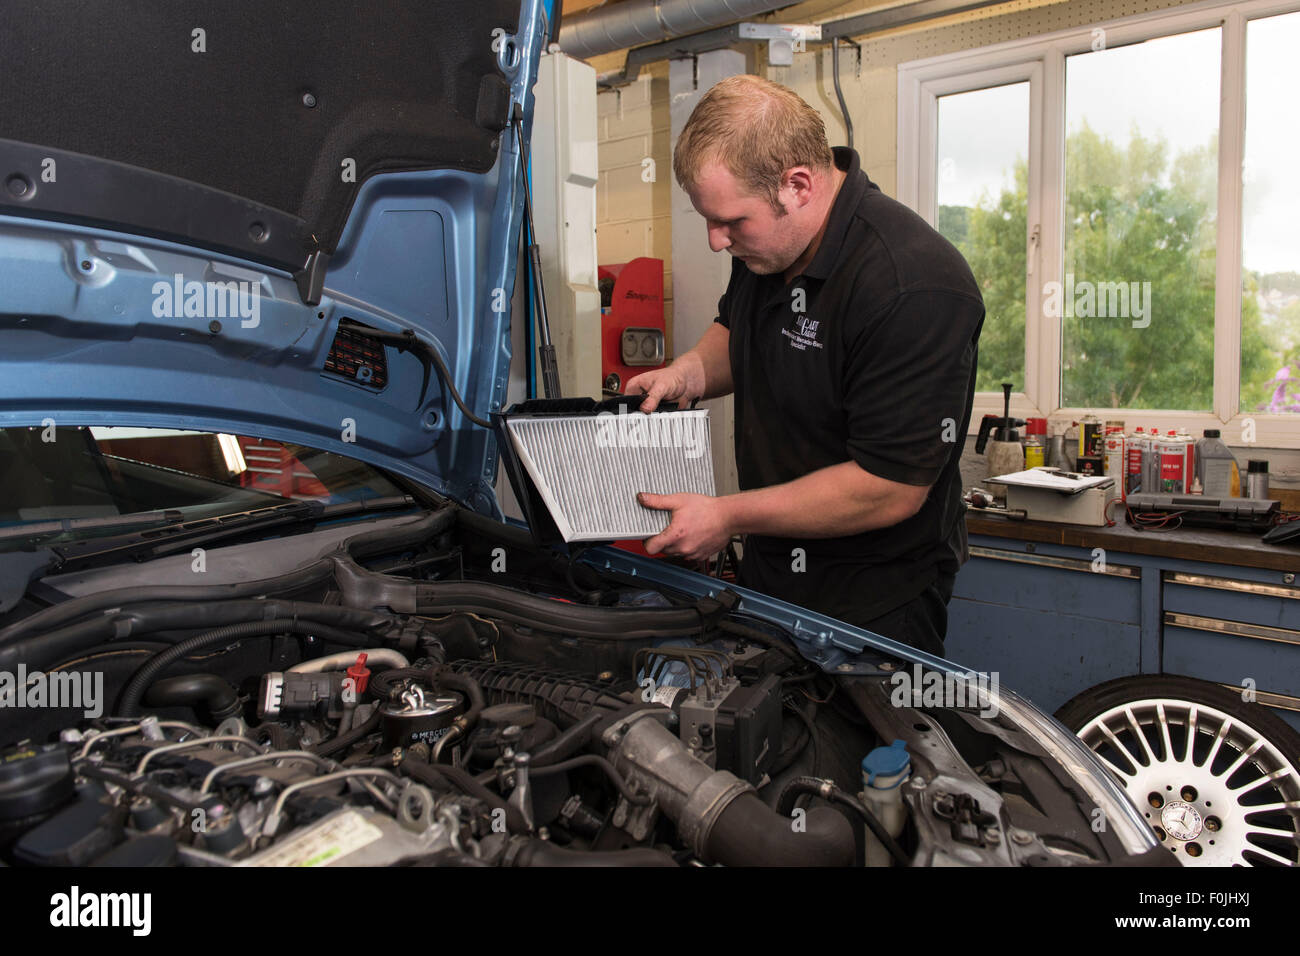 A car mechanic performing routine maintenance replacing a air filter on a car in a car garage during an MOT. - Stock Image